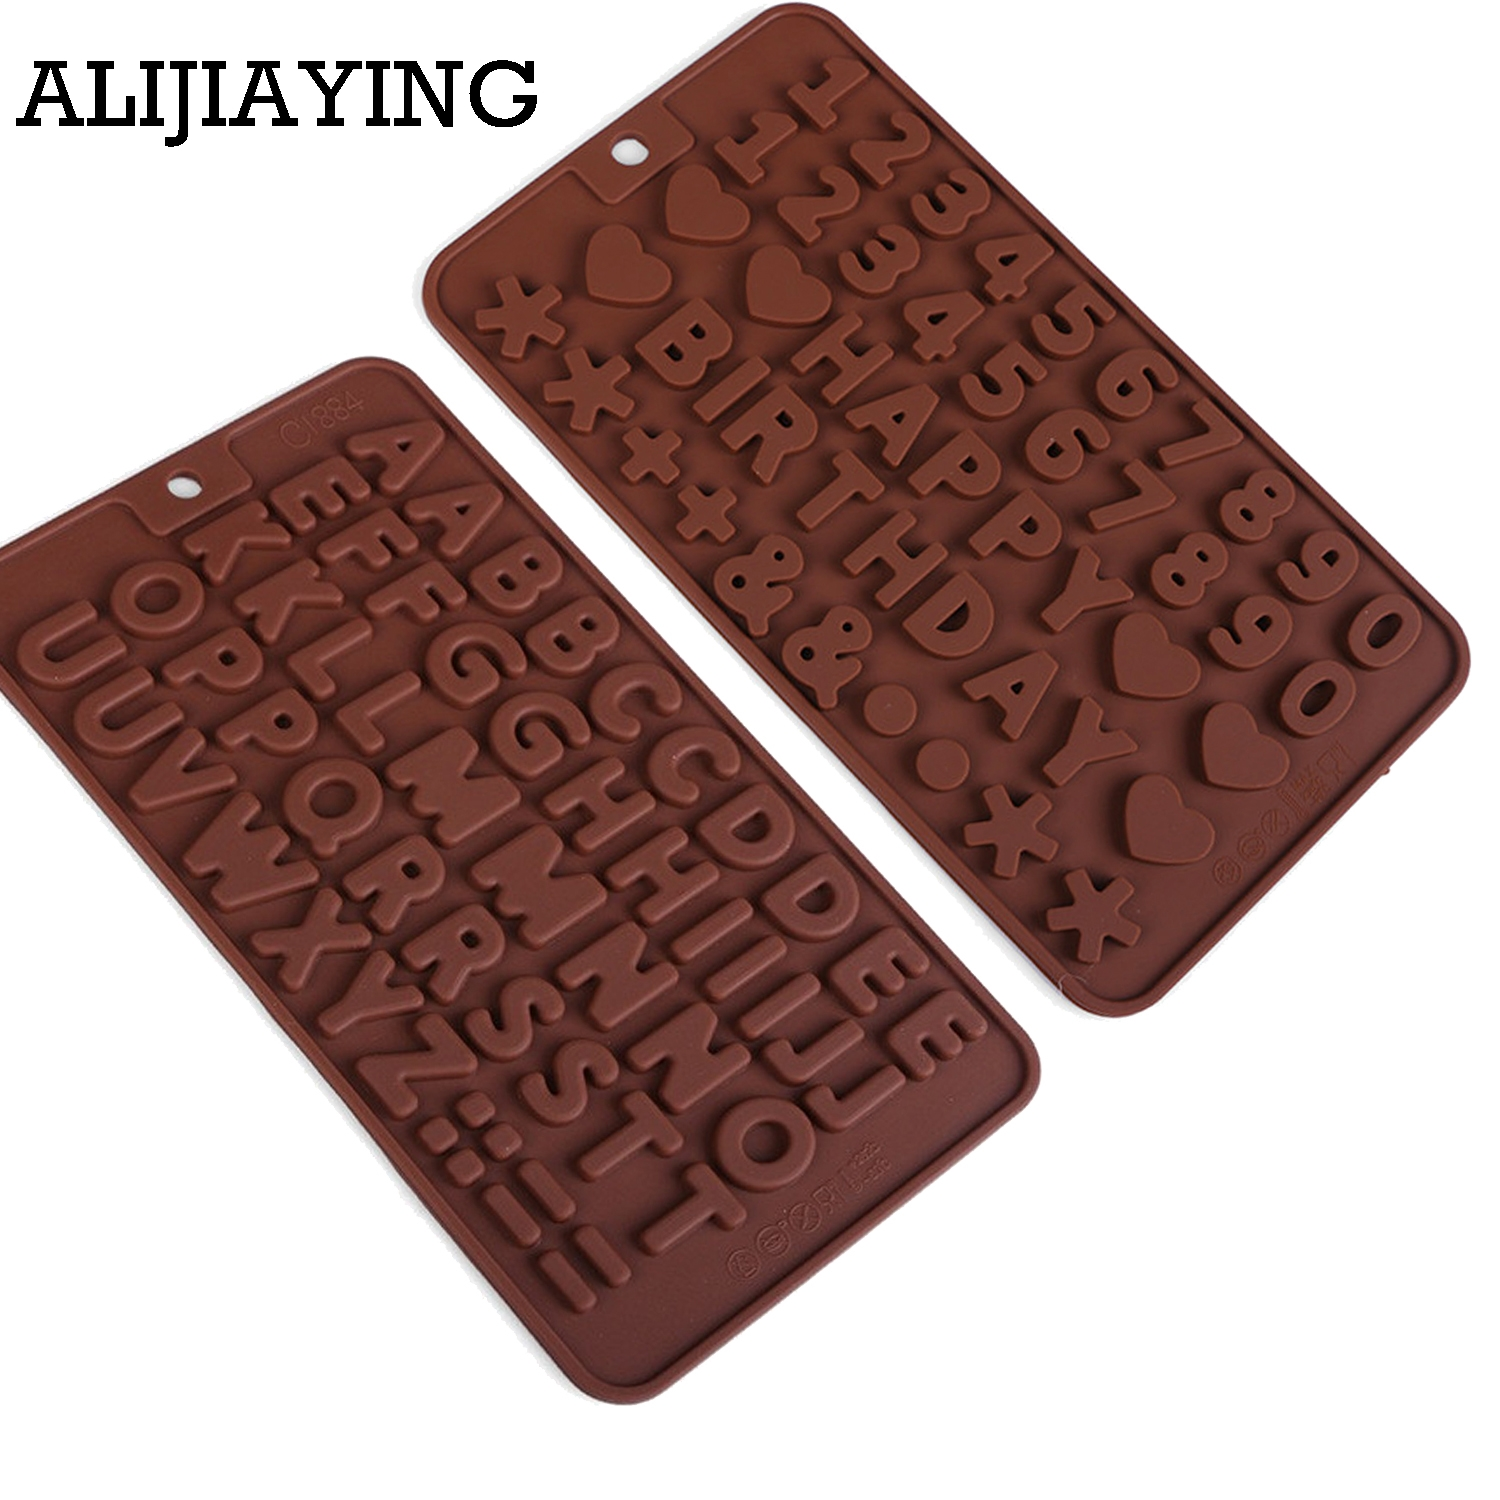 M0187 cake decorating tools silicone chocolate mold letter and number fondant molds cookies bakeware tools